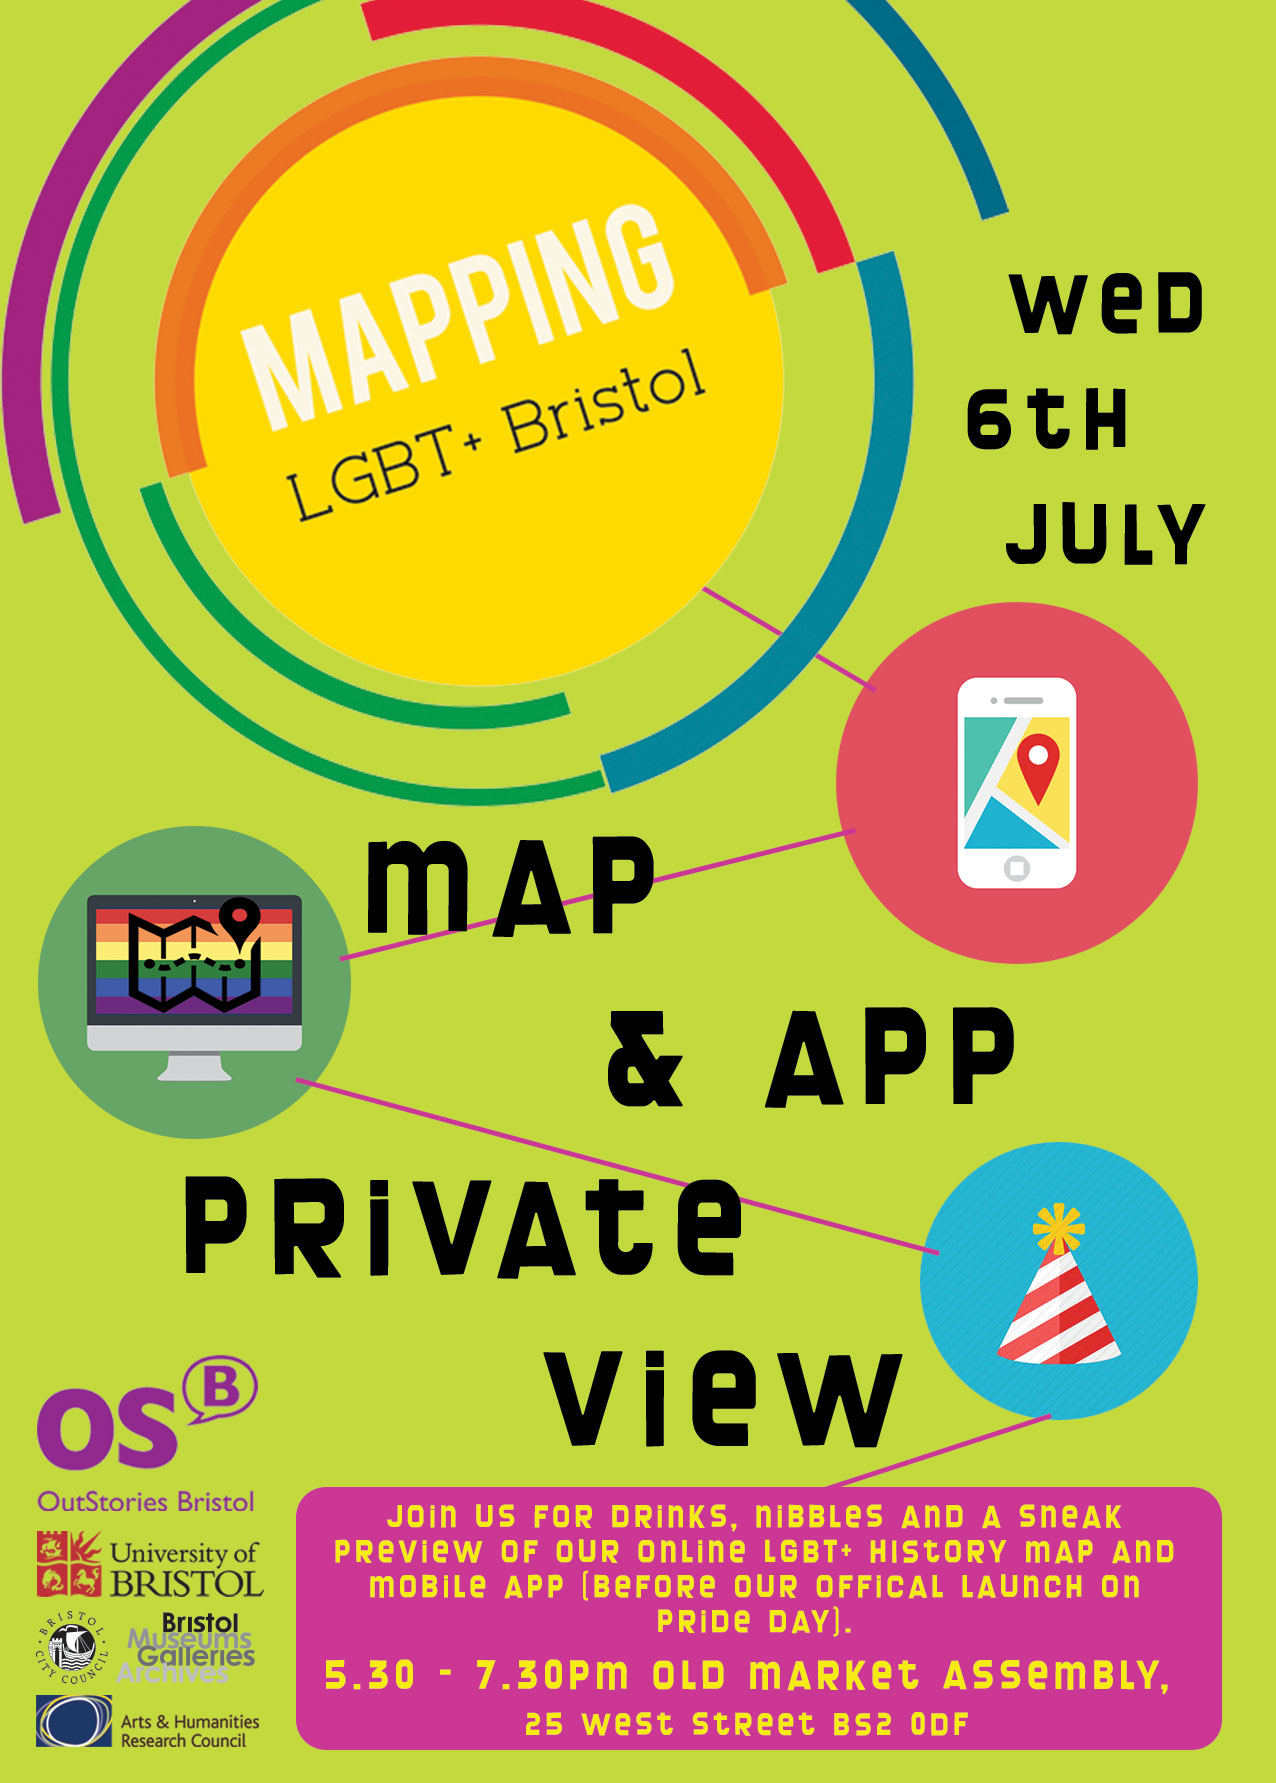 Rainbow/Pride coloured cirlces and the words 'mapping LGBT Bristol' superimposed on green background. Three icons show a computer, party hat and mobile deivce.